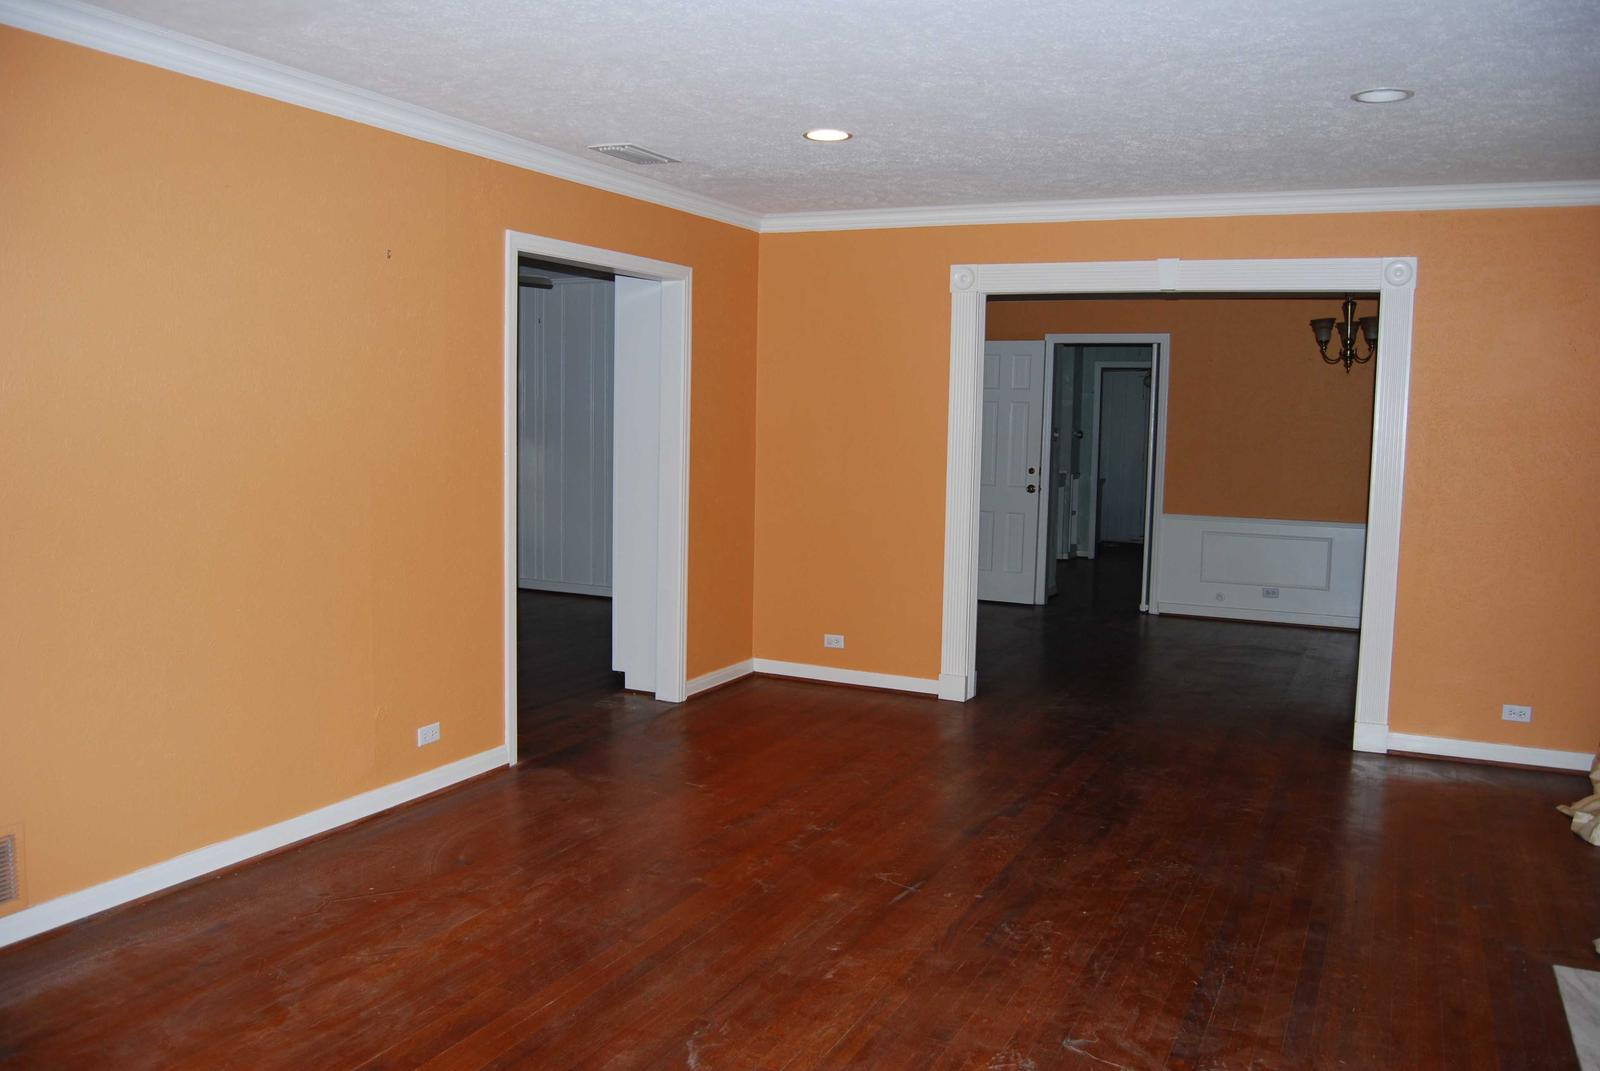 pics and help suggest wall color hardwood floors paint ceiling - Interior Design Wall Paint Colors